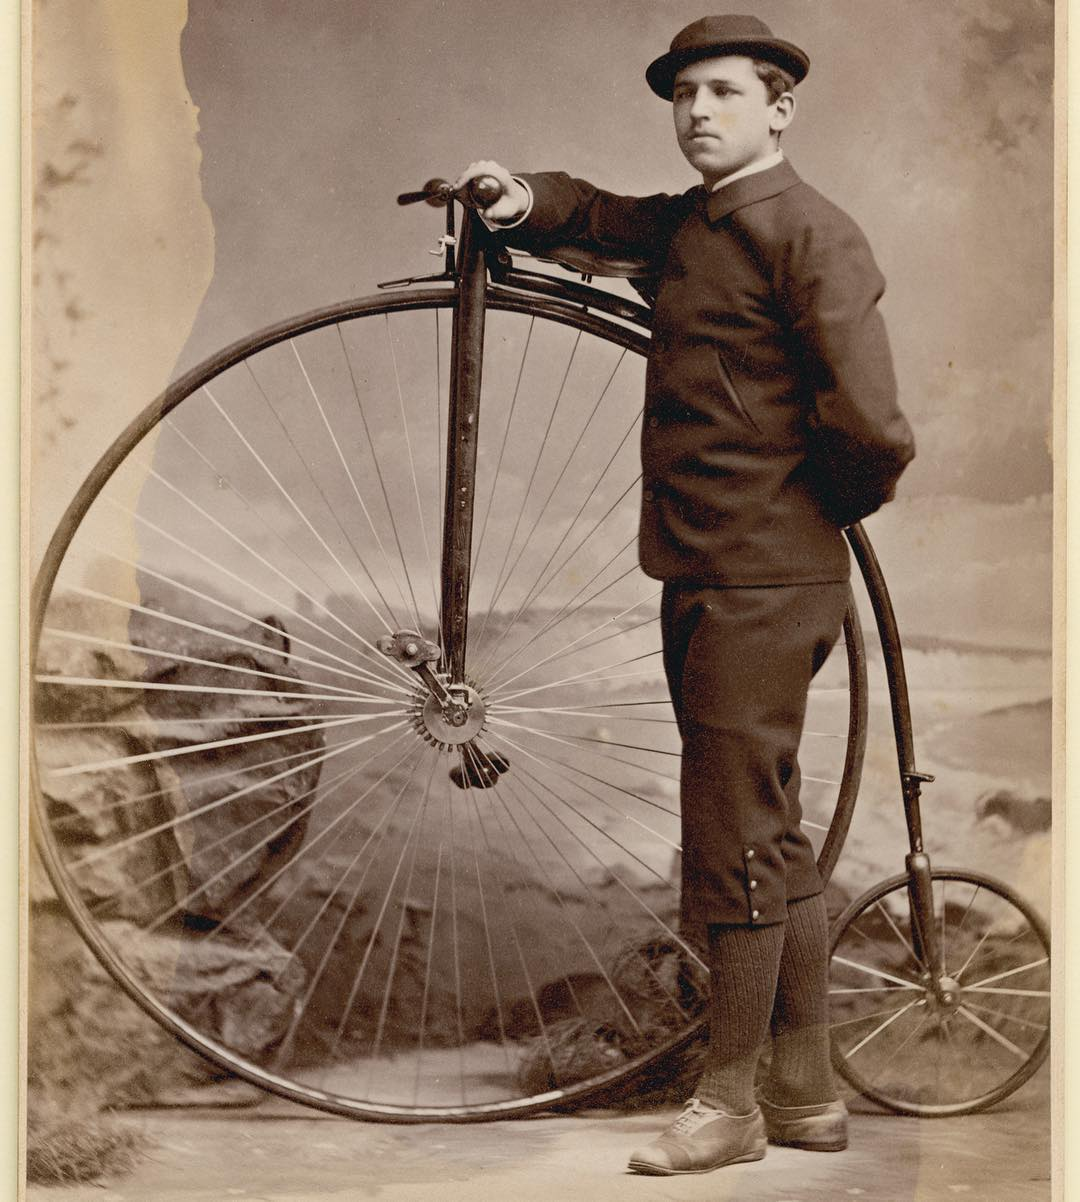 Here is a cabinet card portrait of William Dwight Chandler, a St. Paul's School student from 1875-1881, for #throwbackthursday . A few years after graduating he became the publisher of the Concord Monitor and later in life was the Postmaster of Concord, NH. He is shown here with his high wheel bicycle – a very popular item at SPS during that time. #ohrstromlibrary #ohrstromlibrarydigitalarchives #spshistory #iamsps #throwback #tbt #pennyfarthing #highweel #bicycle #highwheelbicycle #williamdwightchandler #formof1880 #concordnh #concord #concordmonitor @concordmonitor #postmaster #cabinetcard #kimballstudio